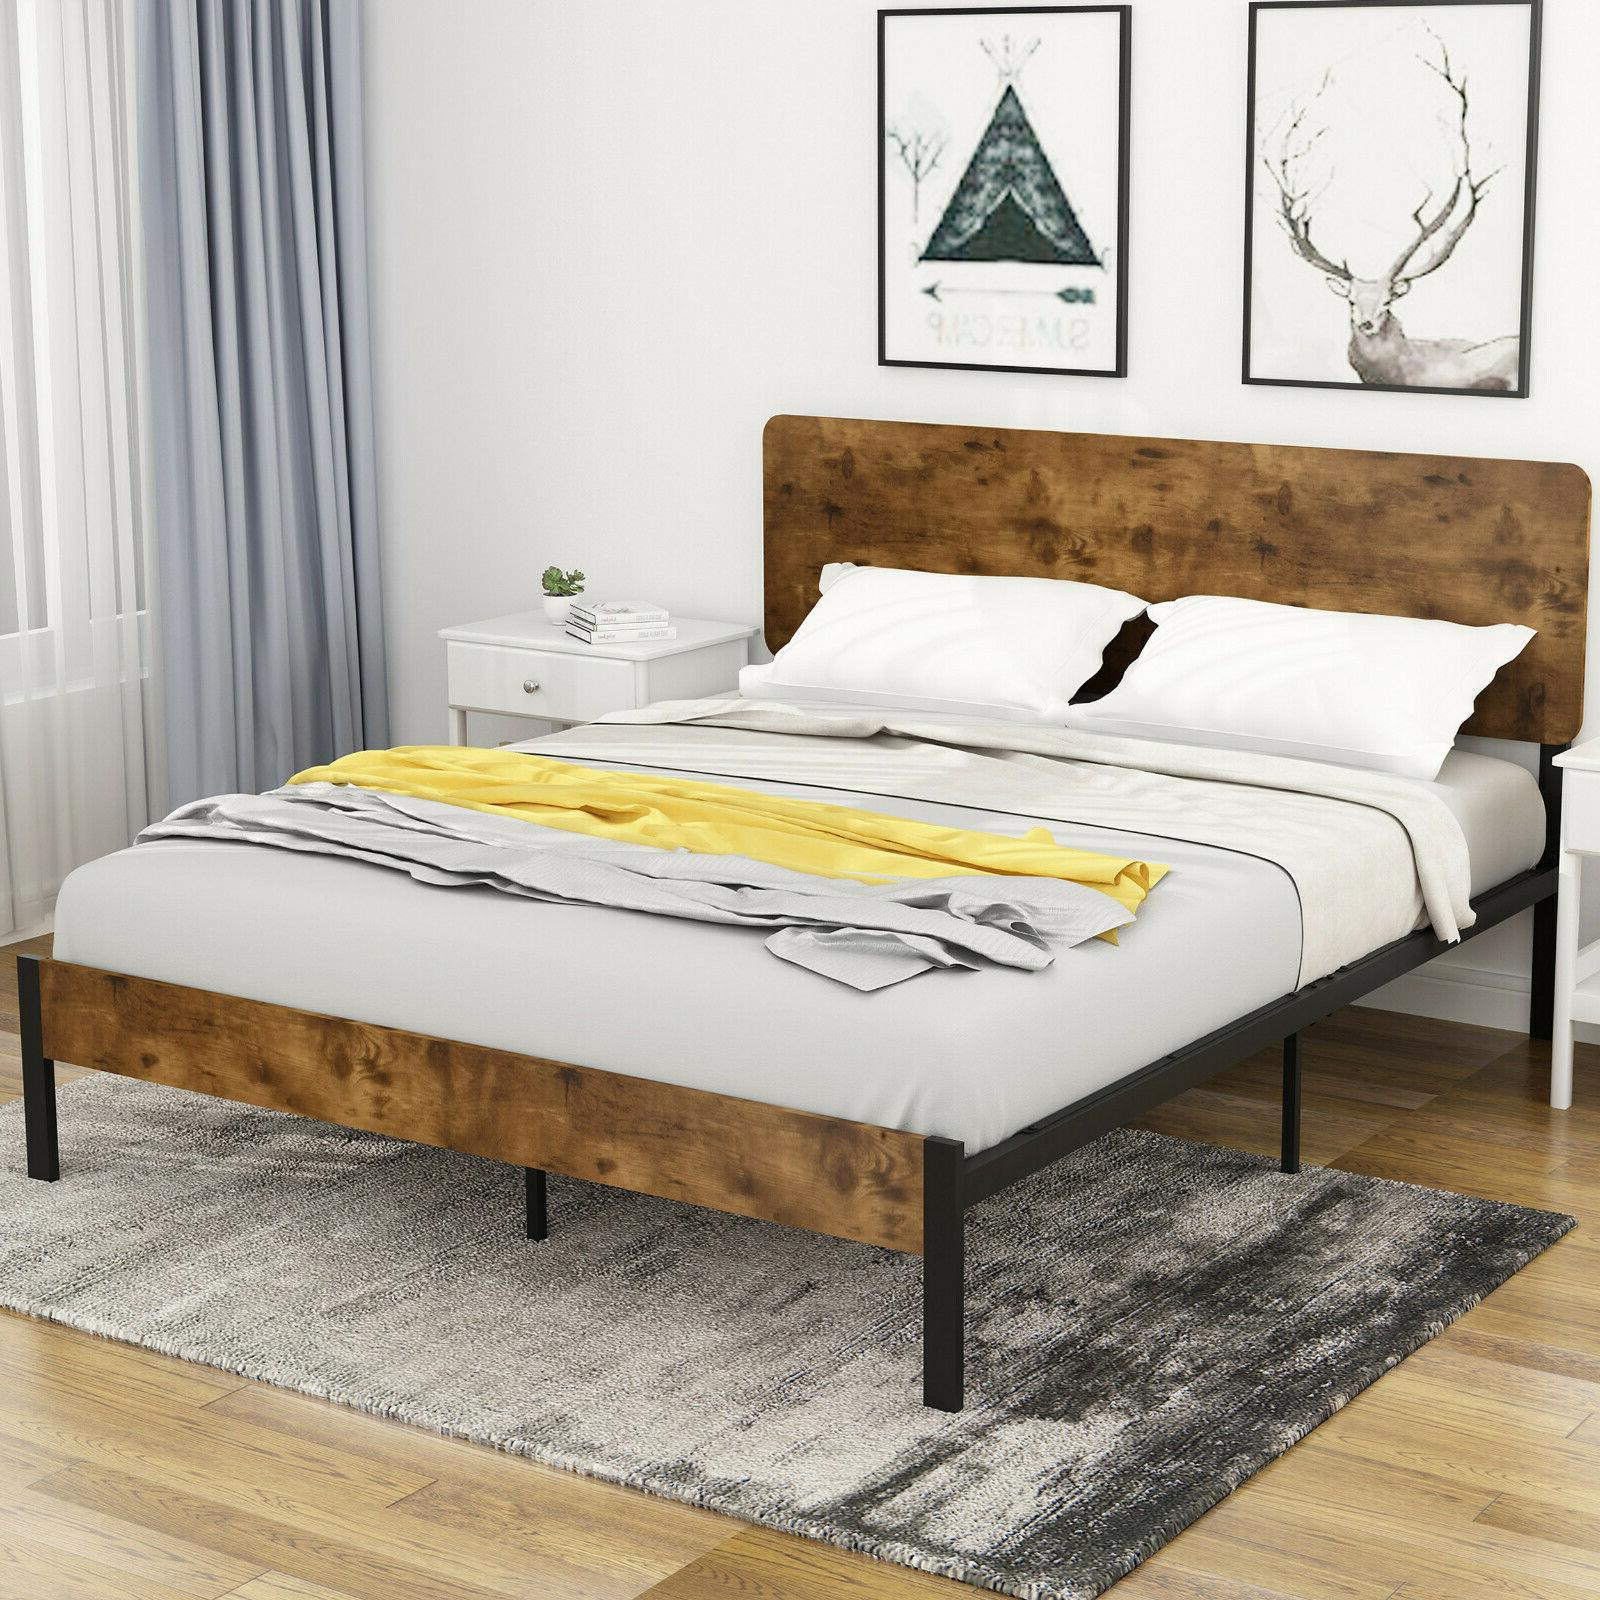 Full Bed Frame with Wood Headboard, High Metal and Wood Plat